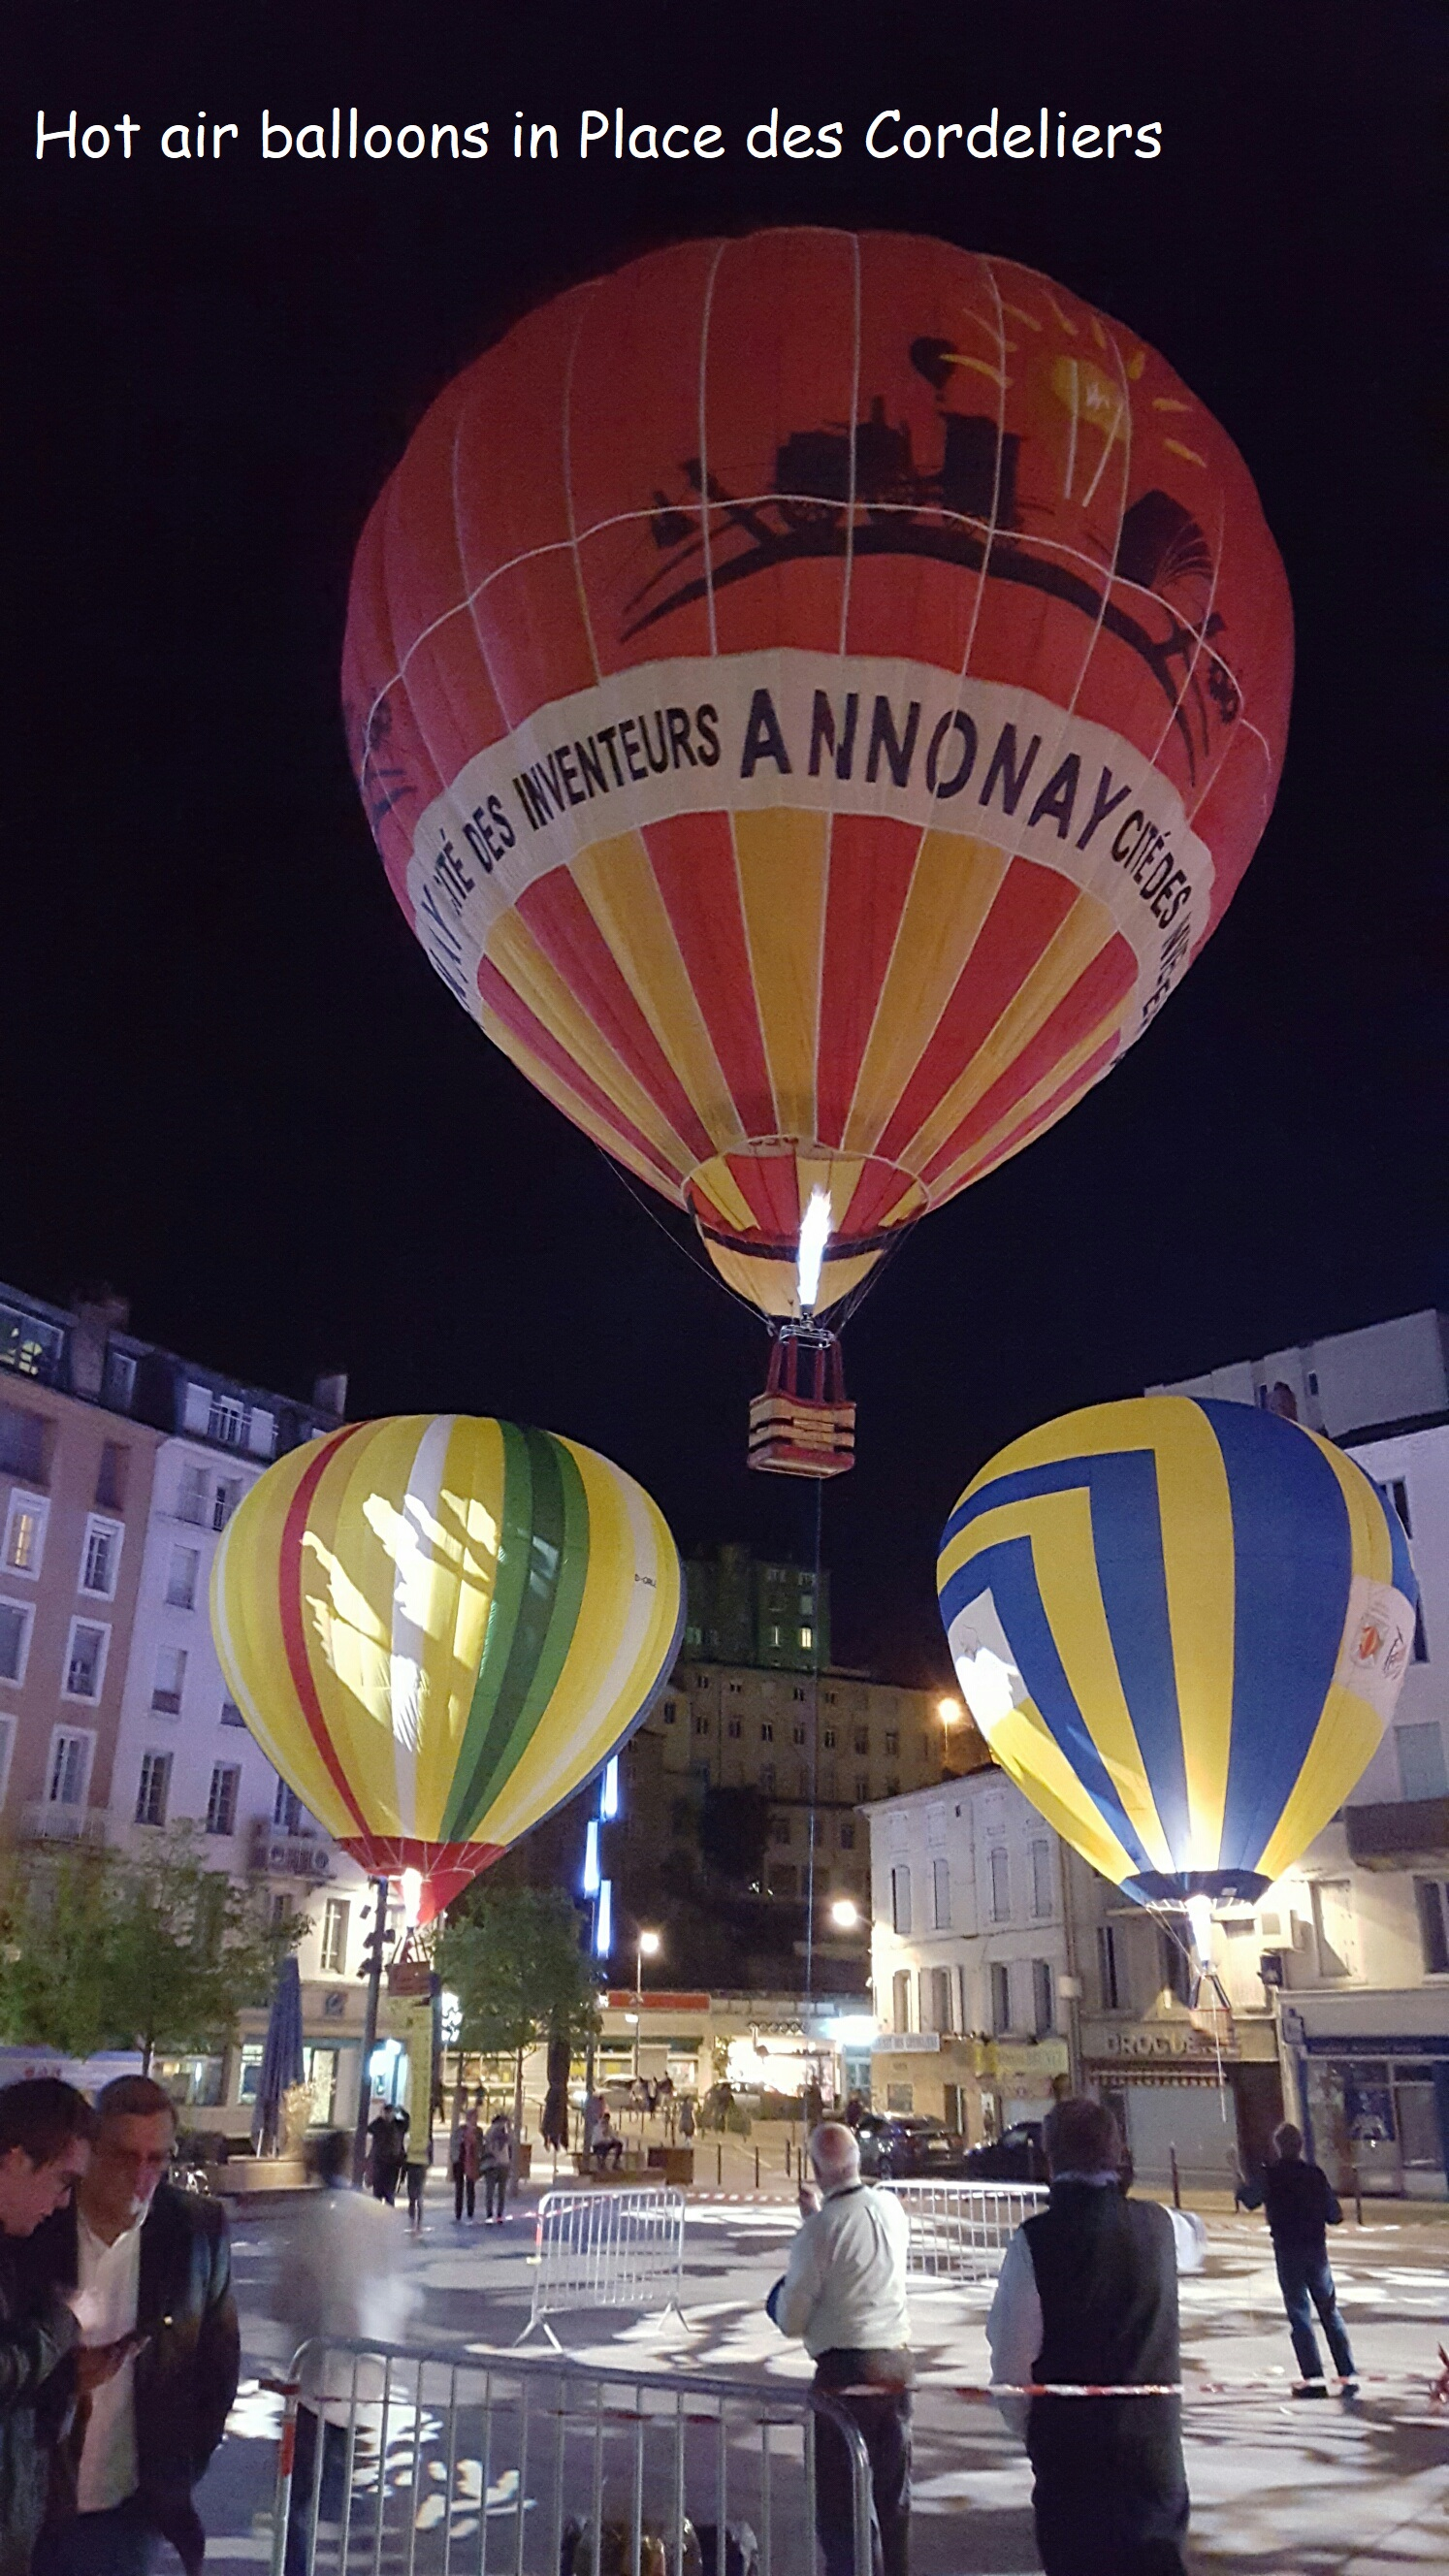 Hot air balloons in Place des Cordeliers.jpg